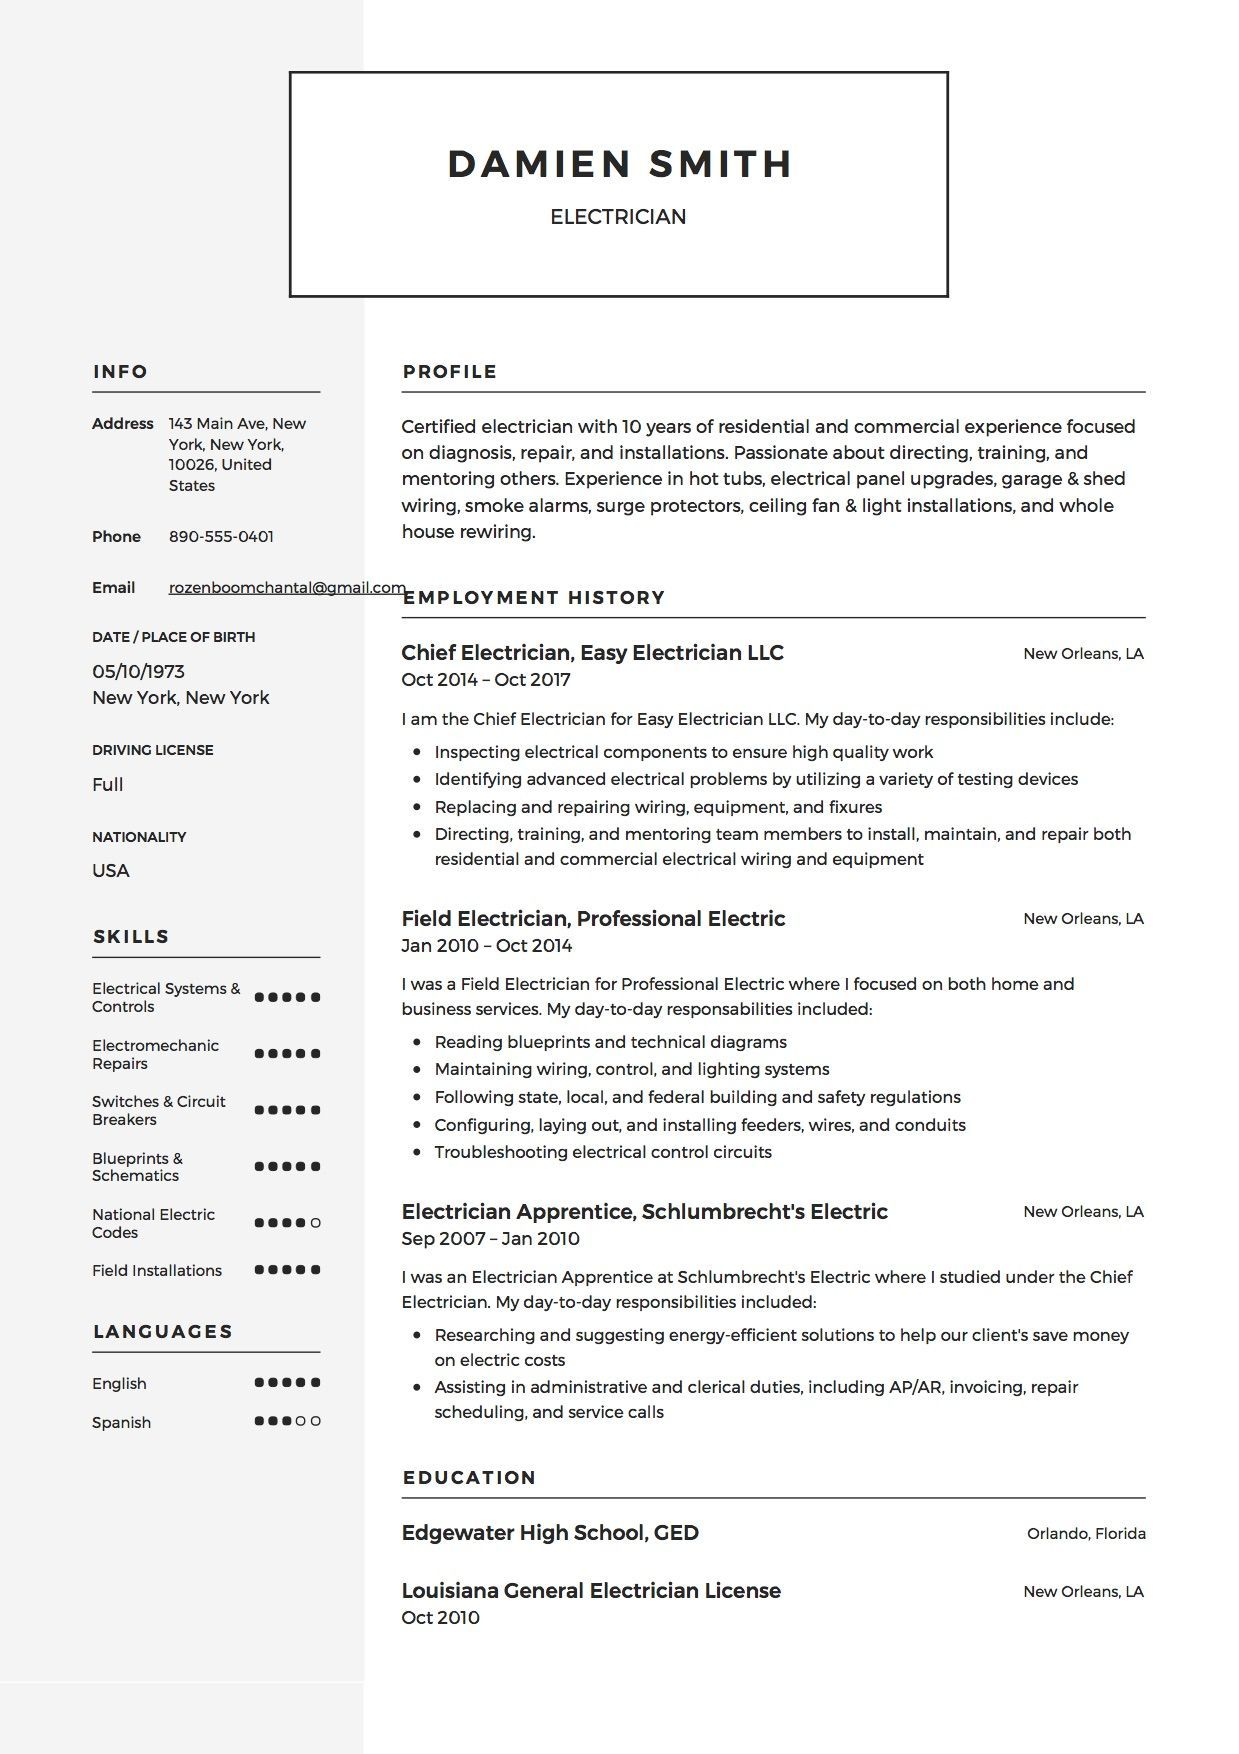 Sample Resume For Electrician Free Electrician Resume Sample Template Example Cv Resume .